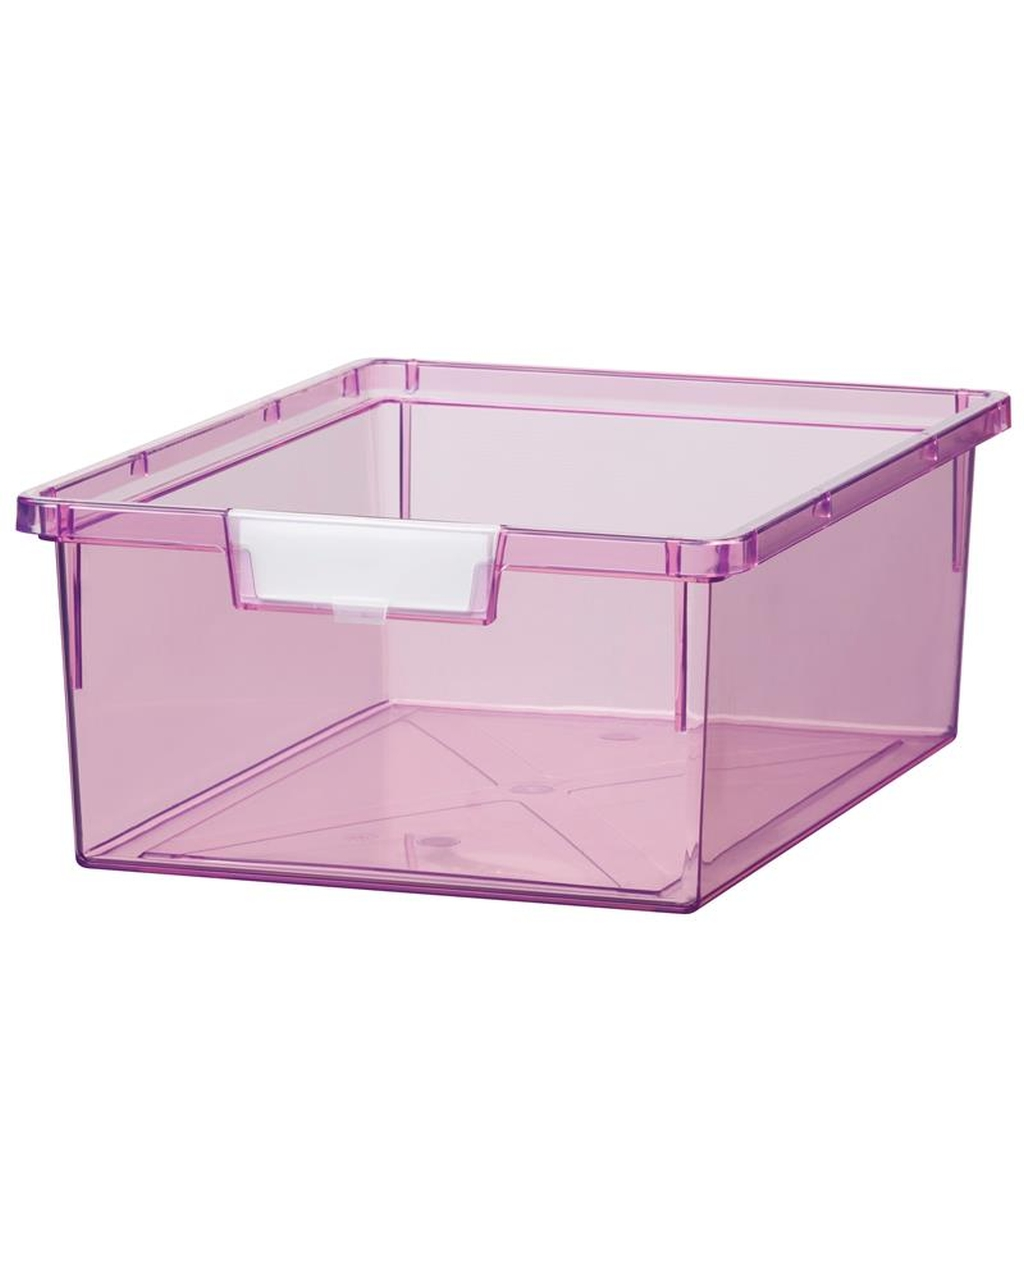 Shatterproof Double Depth Tray - Tint Purple